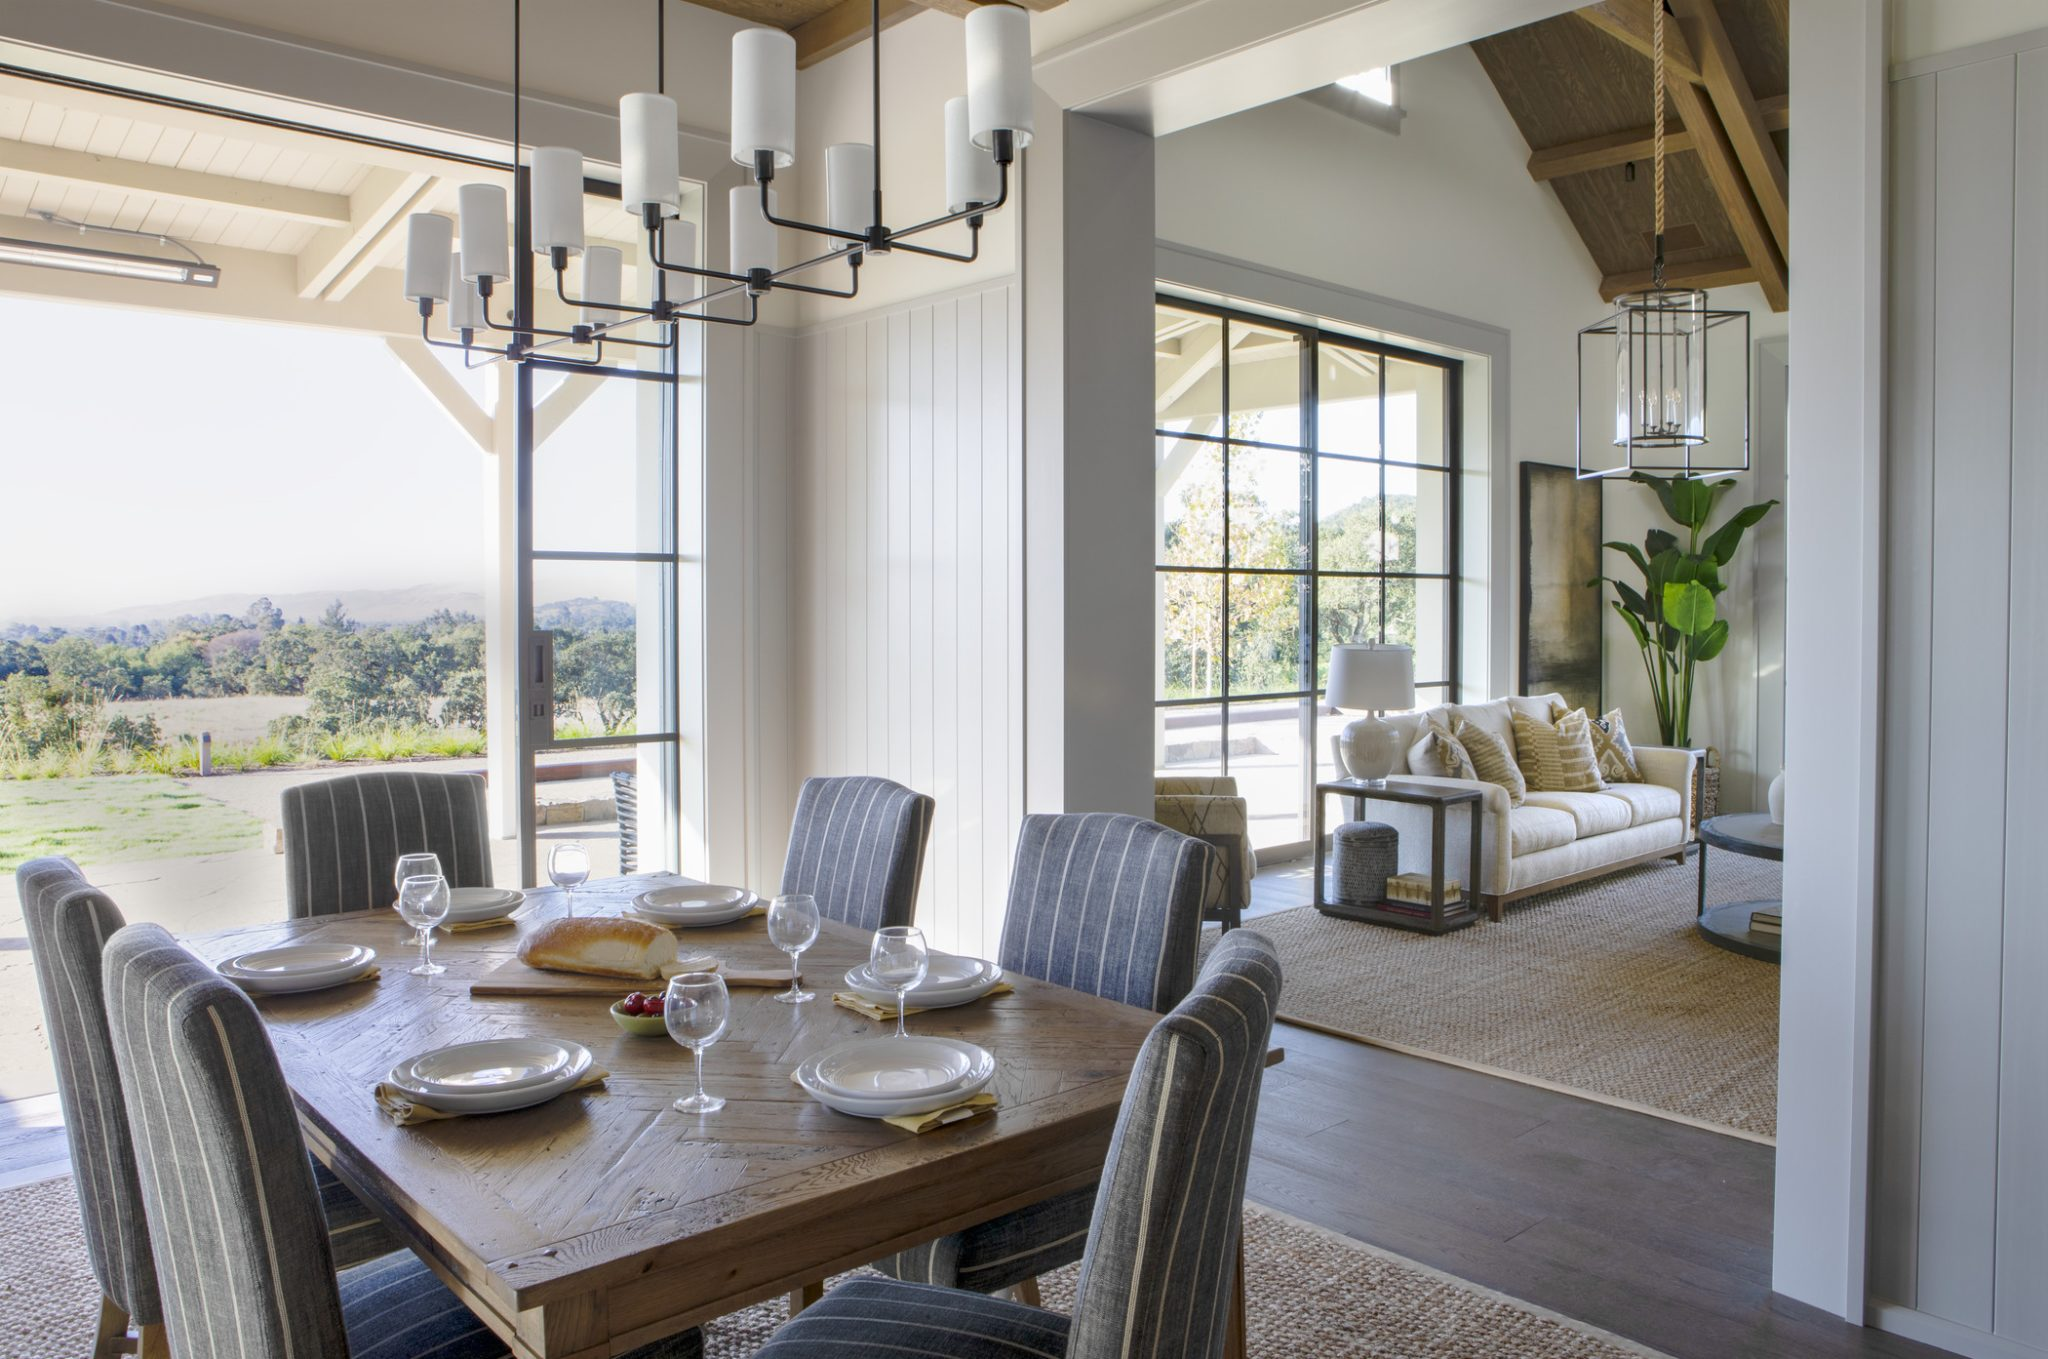 The living, kitchen, and dining areas of the main house all open up to the porches outside.